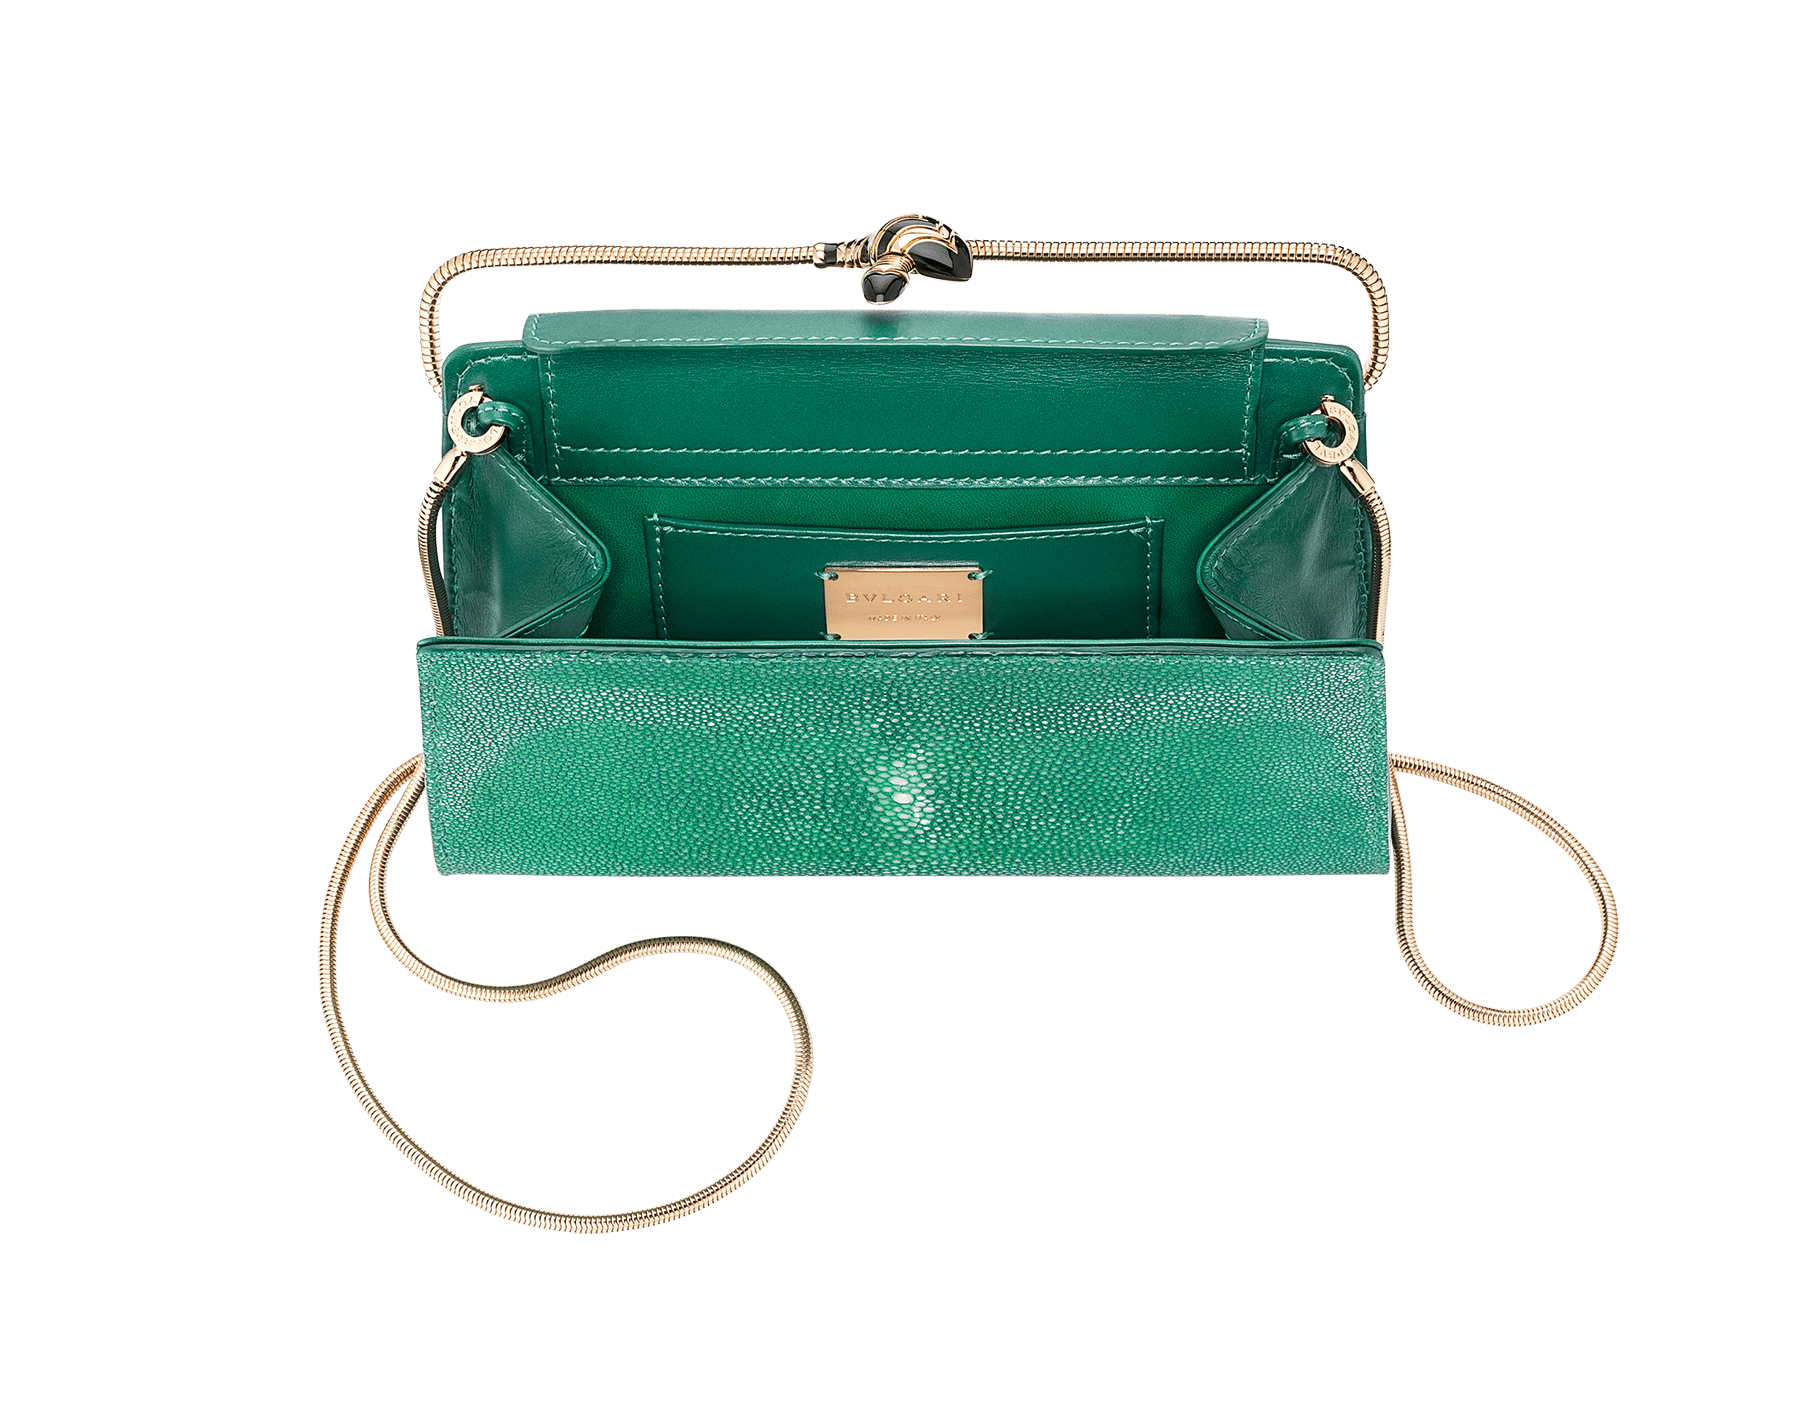 Serpenti Tubogas clutch in green galuchat skin with brass light pink gold plated snake body shaped frame closure with black enamel. 526-001-0671S image 4